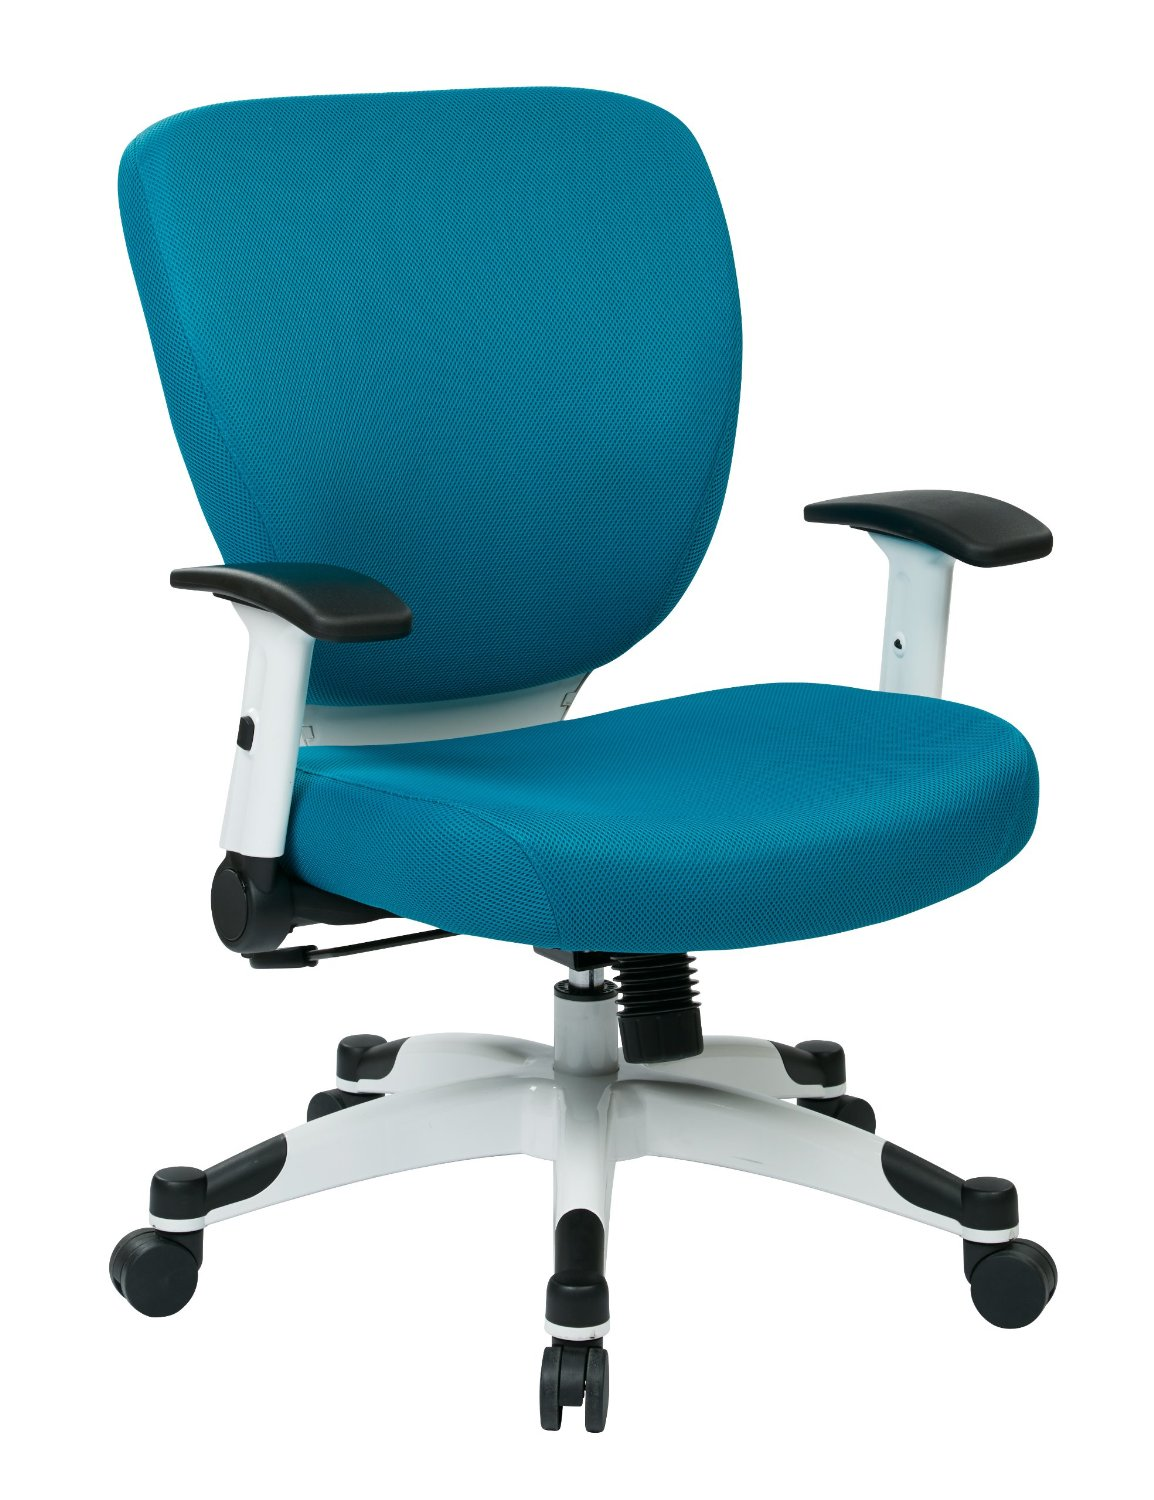 Blue Desk Chair Space Chairs For Office